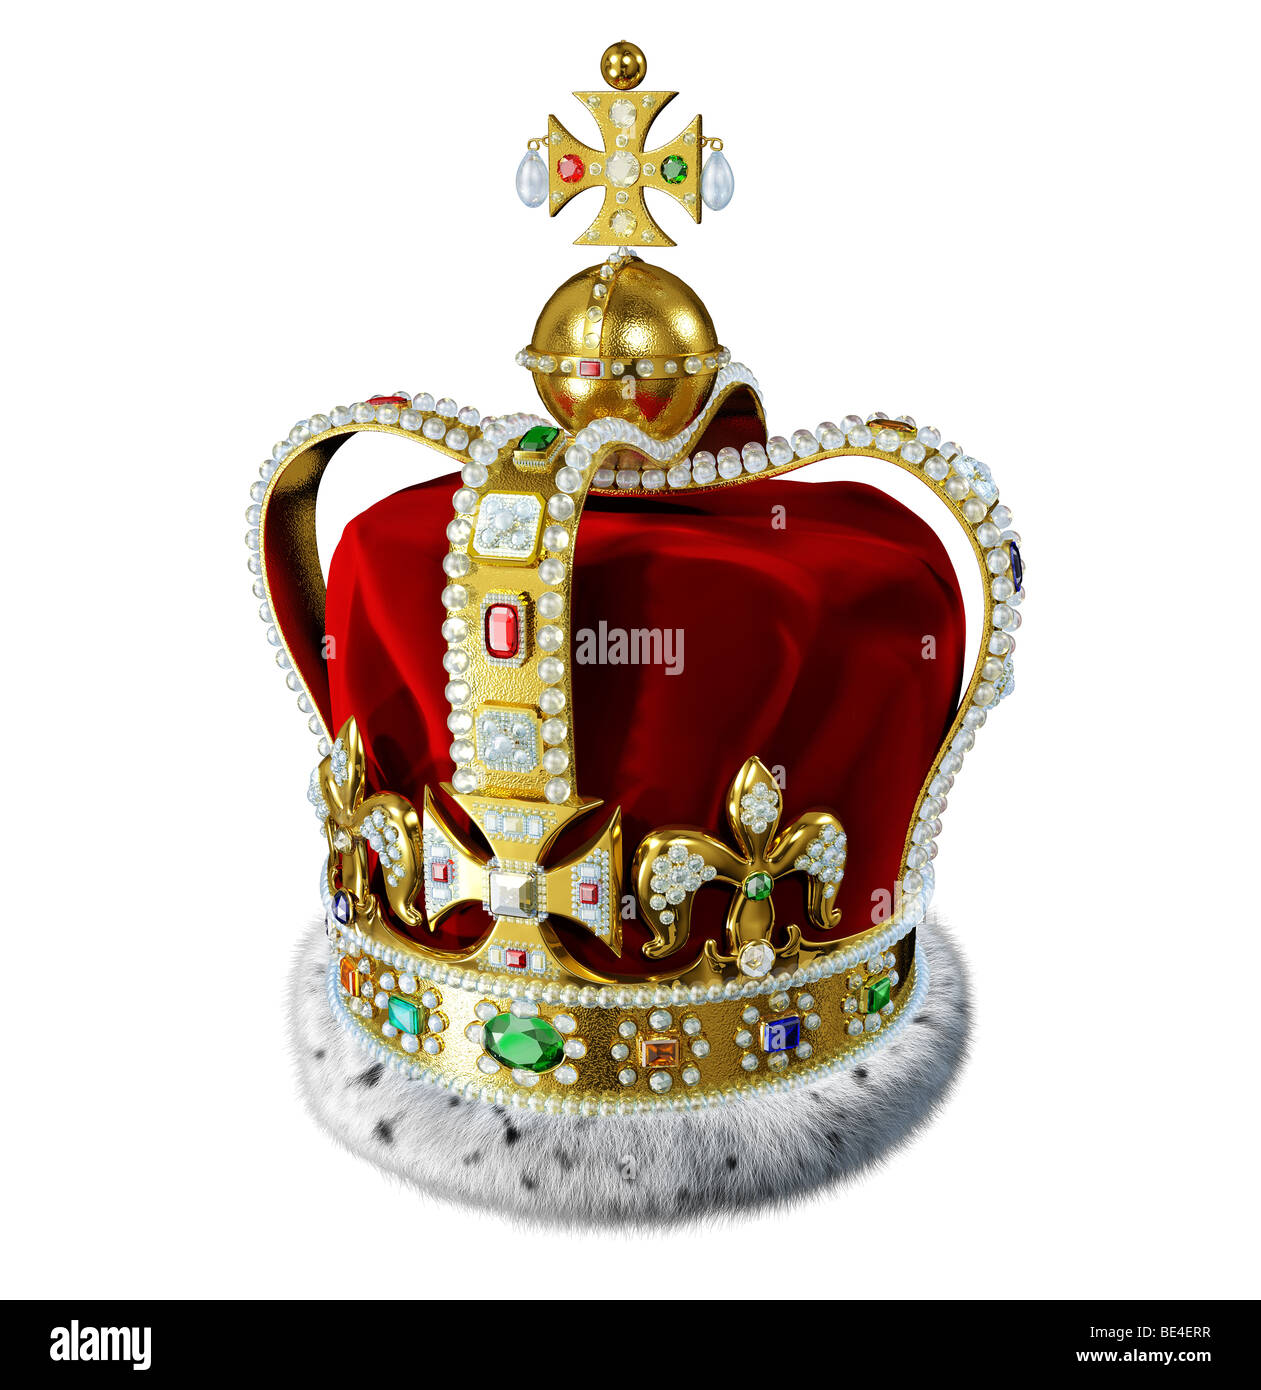 King crown with velvet, ermine, jewels and precious gems decorations - Stock Image